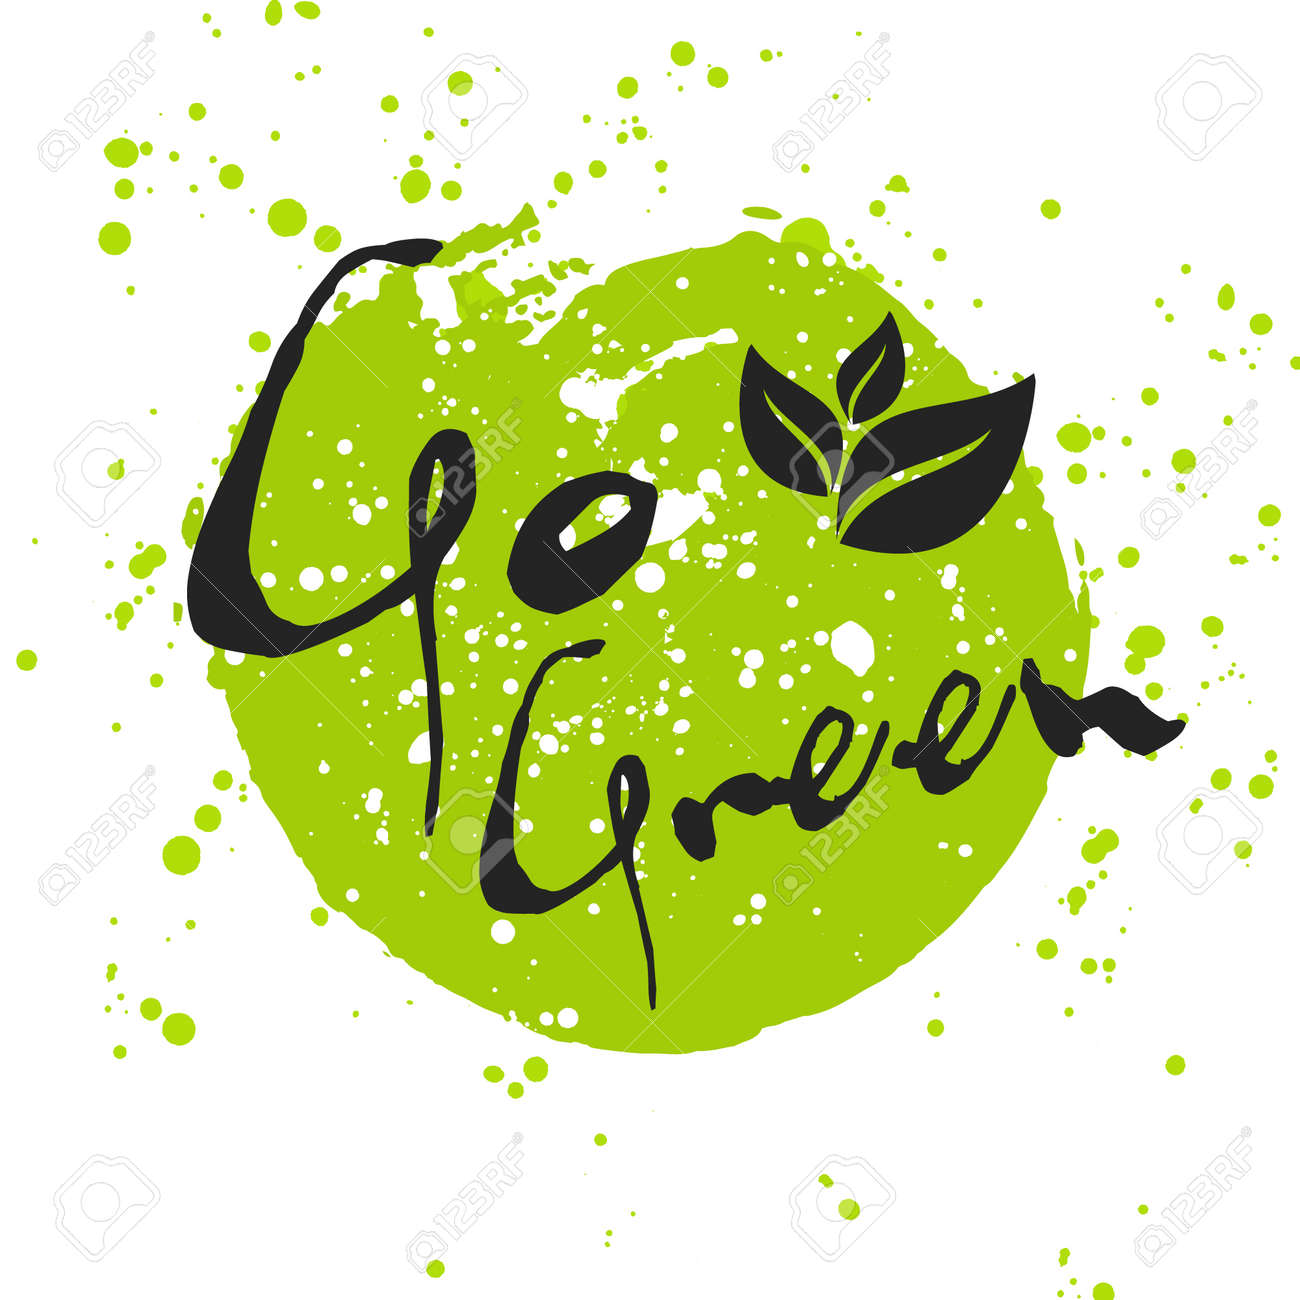 Go Green Eco Icon With Leaf Vector Bio Sign On Watercolor Stain Royalty Free Cliparts Vectors And Stock Illustration Image 45117709